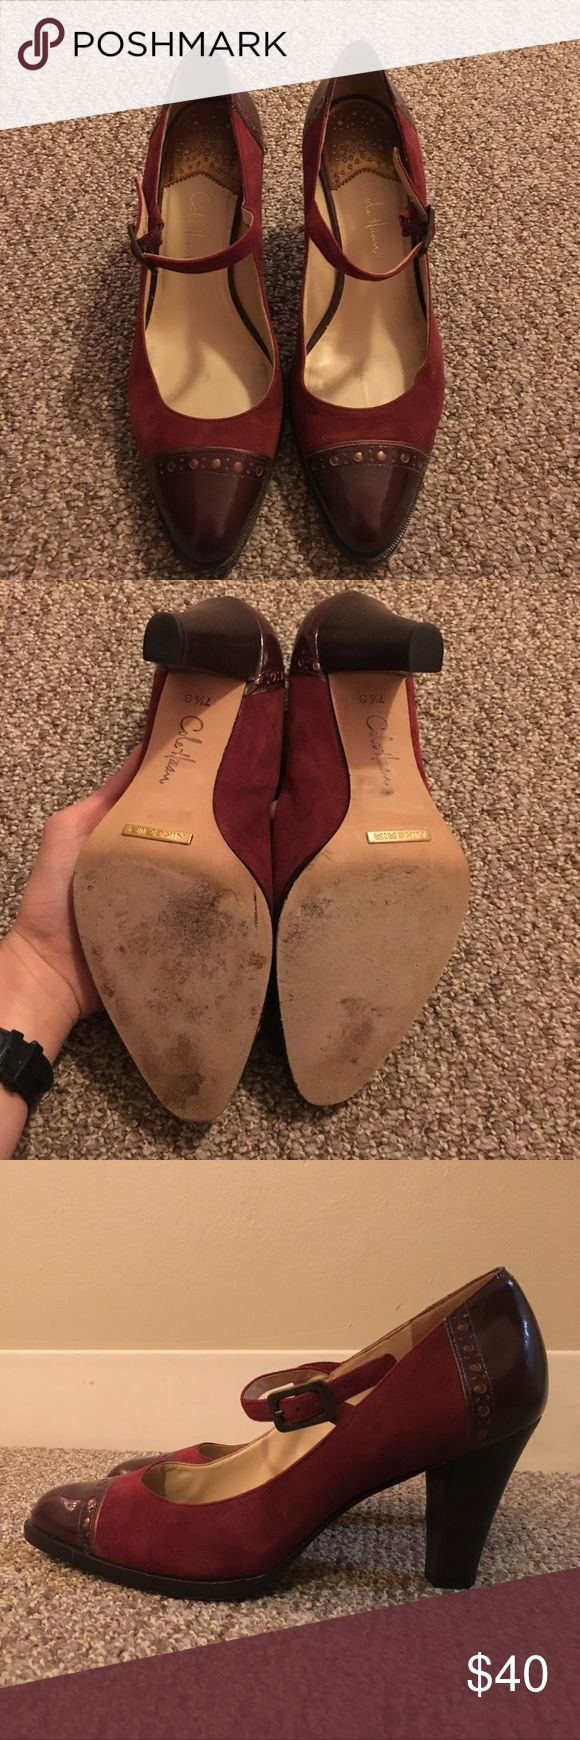 Cole Haan pumps, size 7.5 Gently used, only visible on the soles. Very comfortable! Cole Haan Shoes Heels